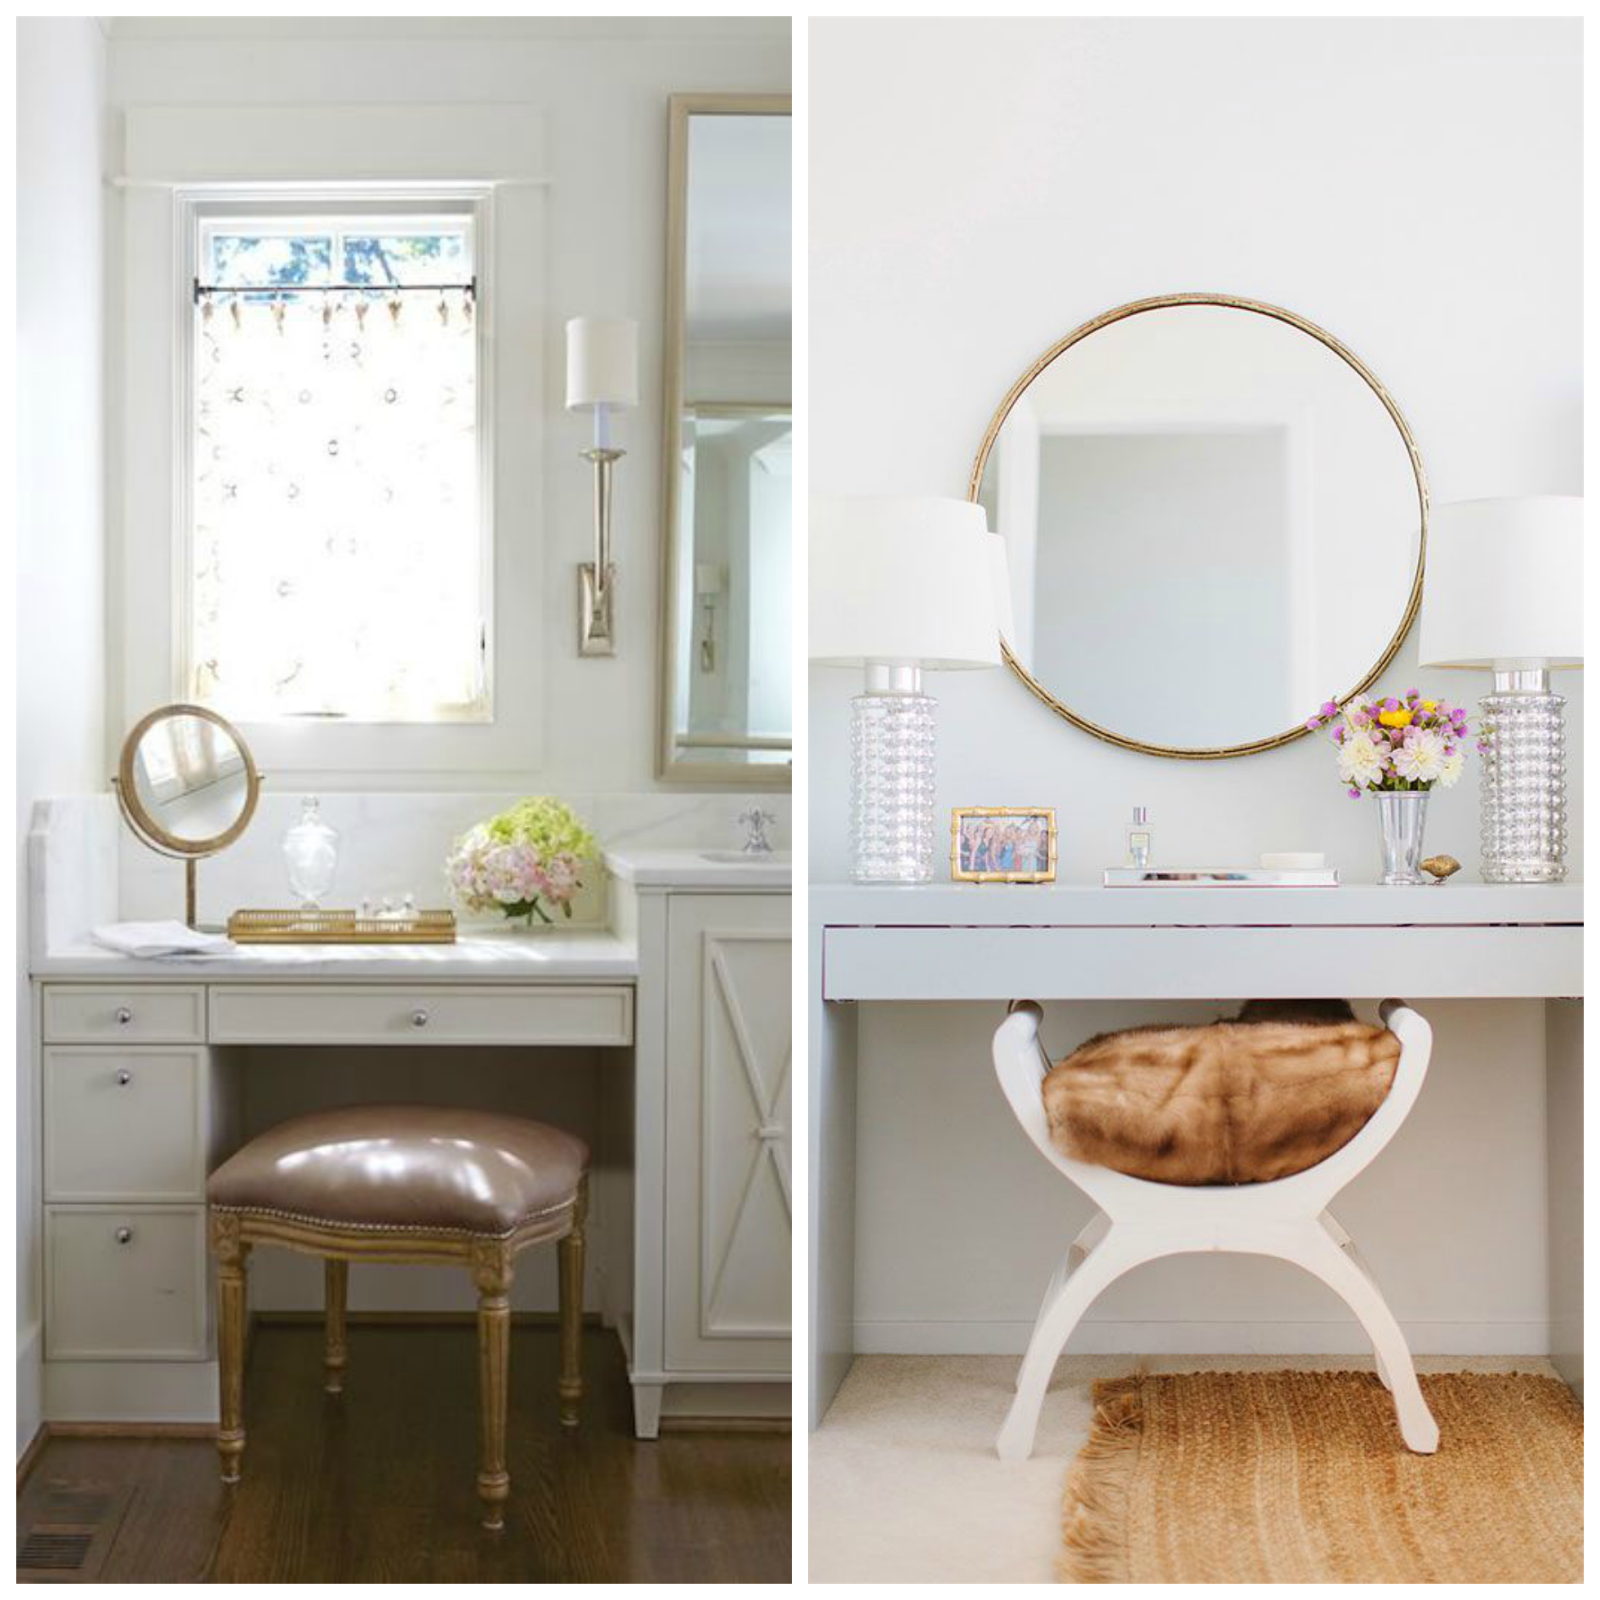 Anna: needed: makeup vanity space